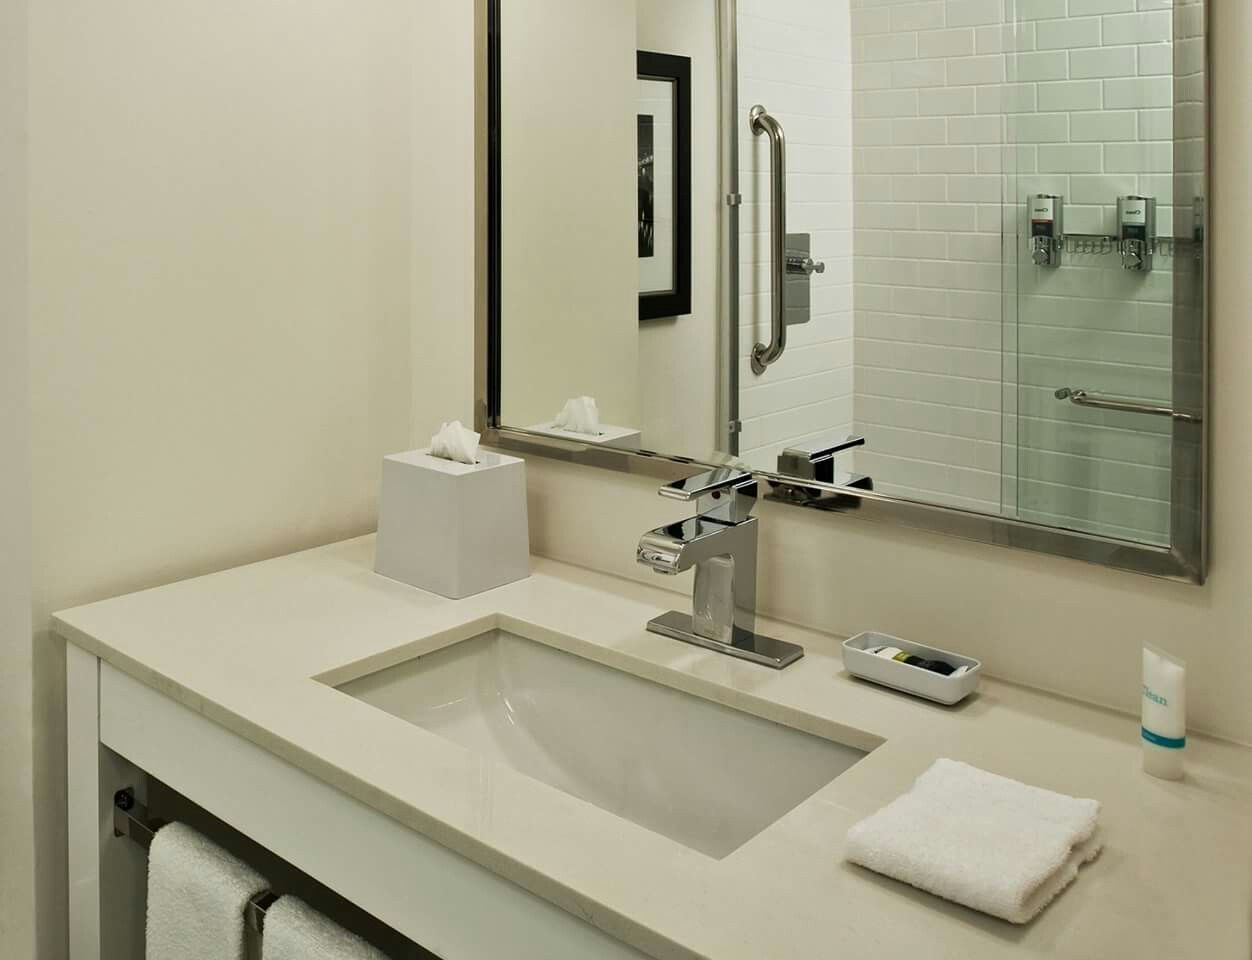 White engineered quartz top with white stained wood vanity base. Rectangular sink cutout and polished chrome metal faucet